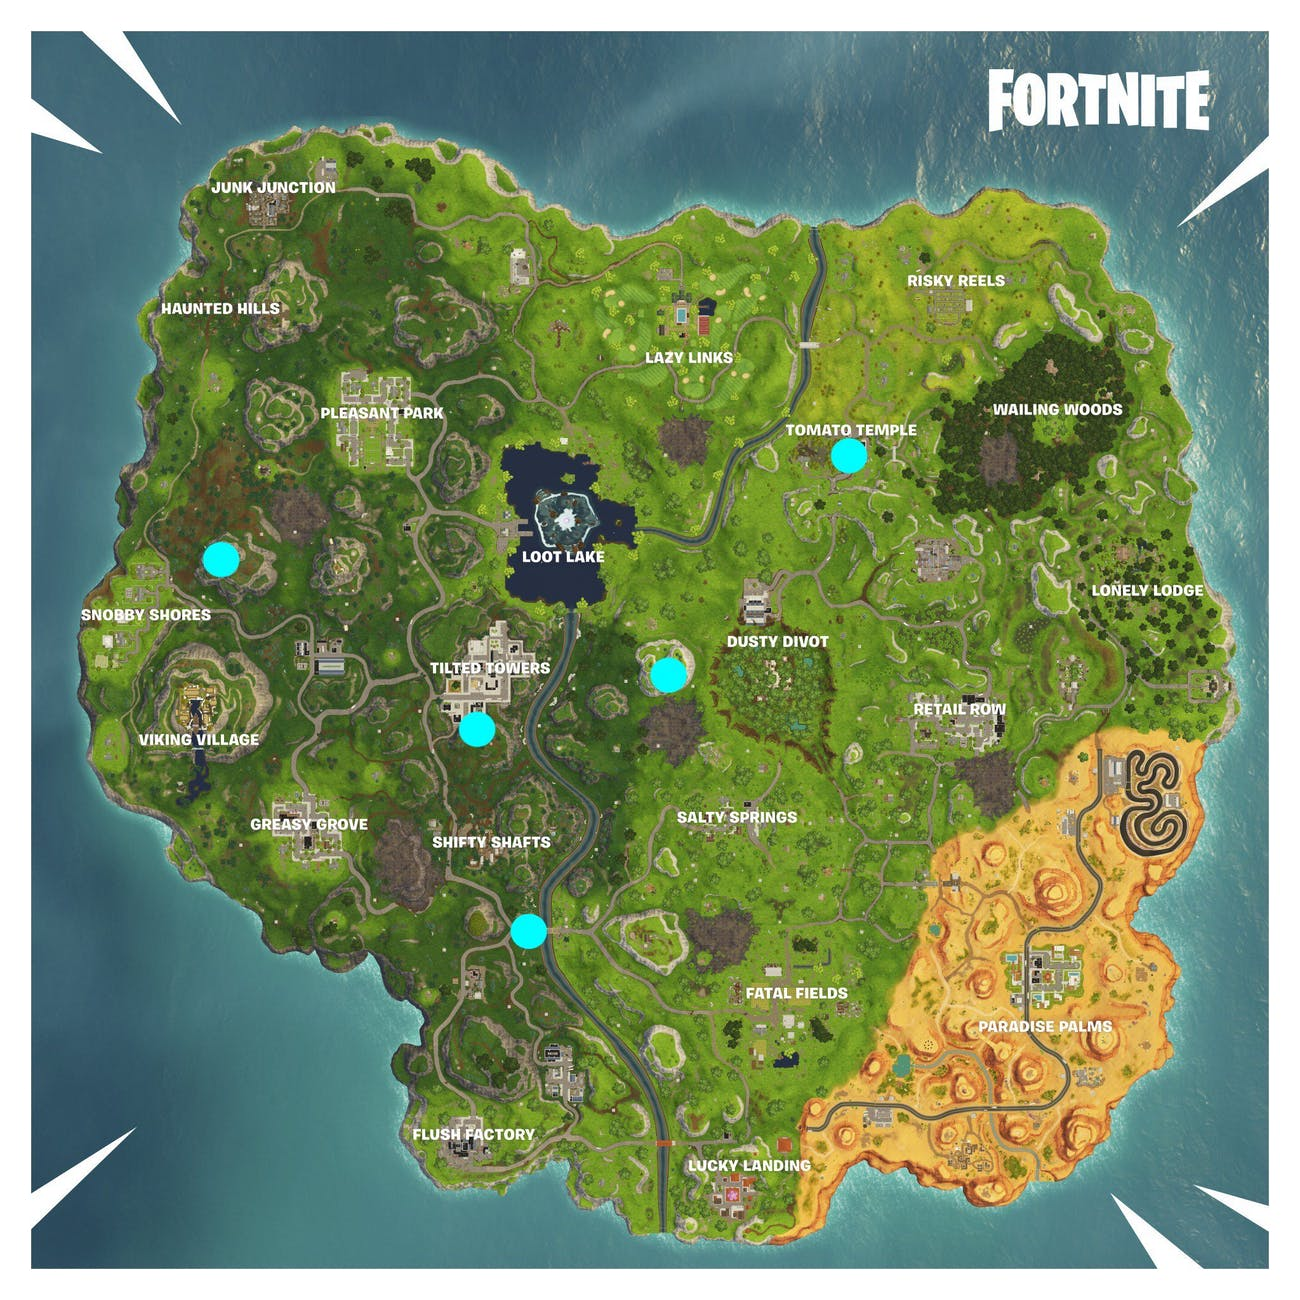 'Fortnite' Season 6, Week 3 Timed Trials